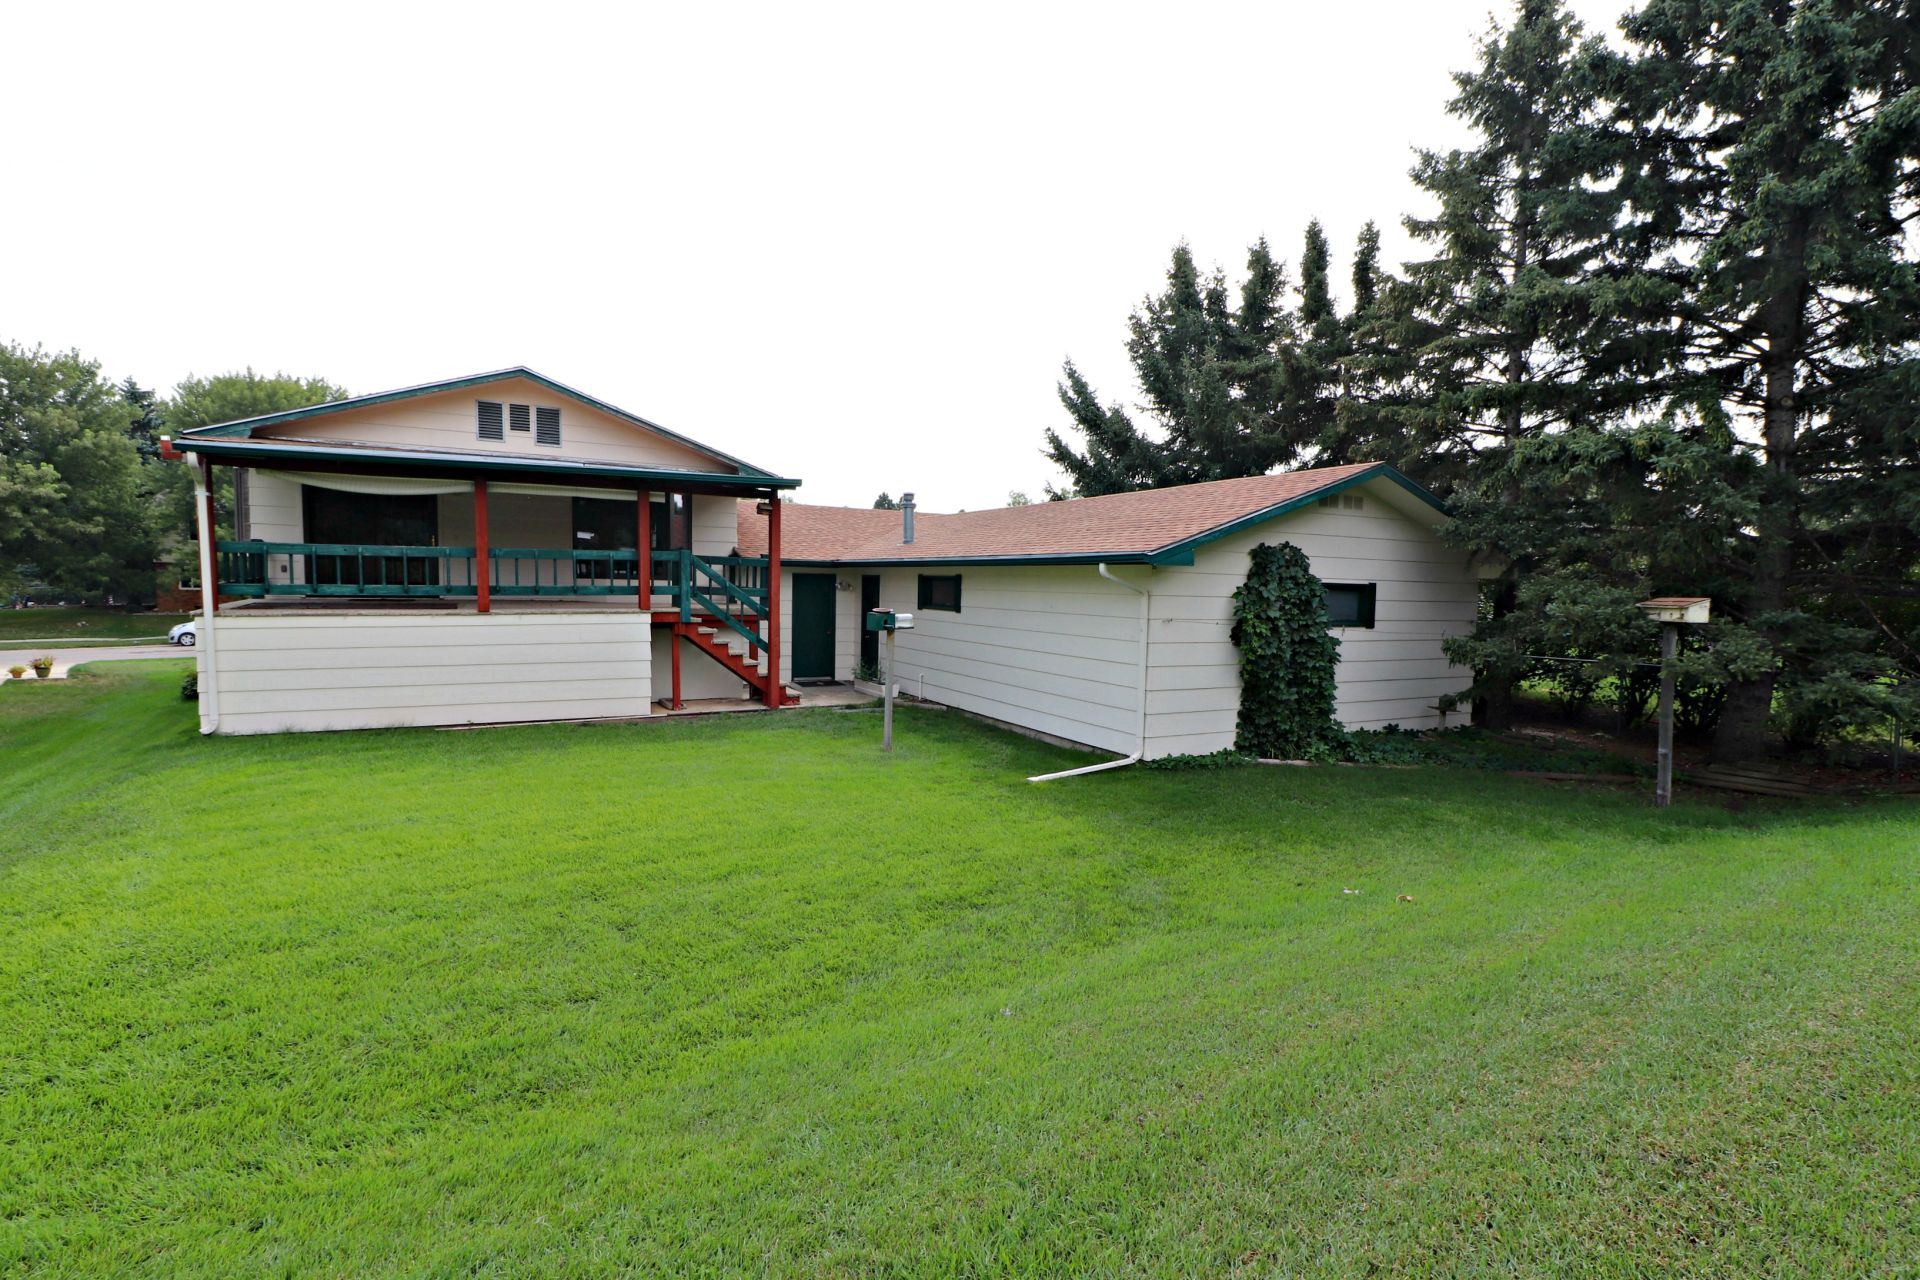 HUGE Garage with great attached home!